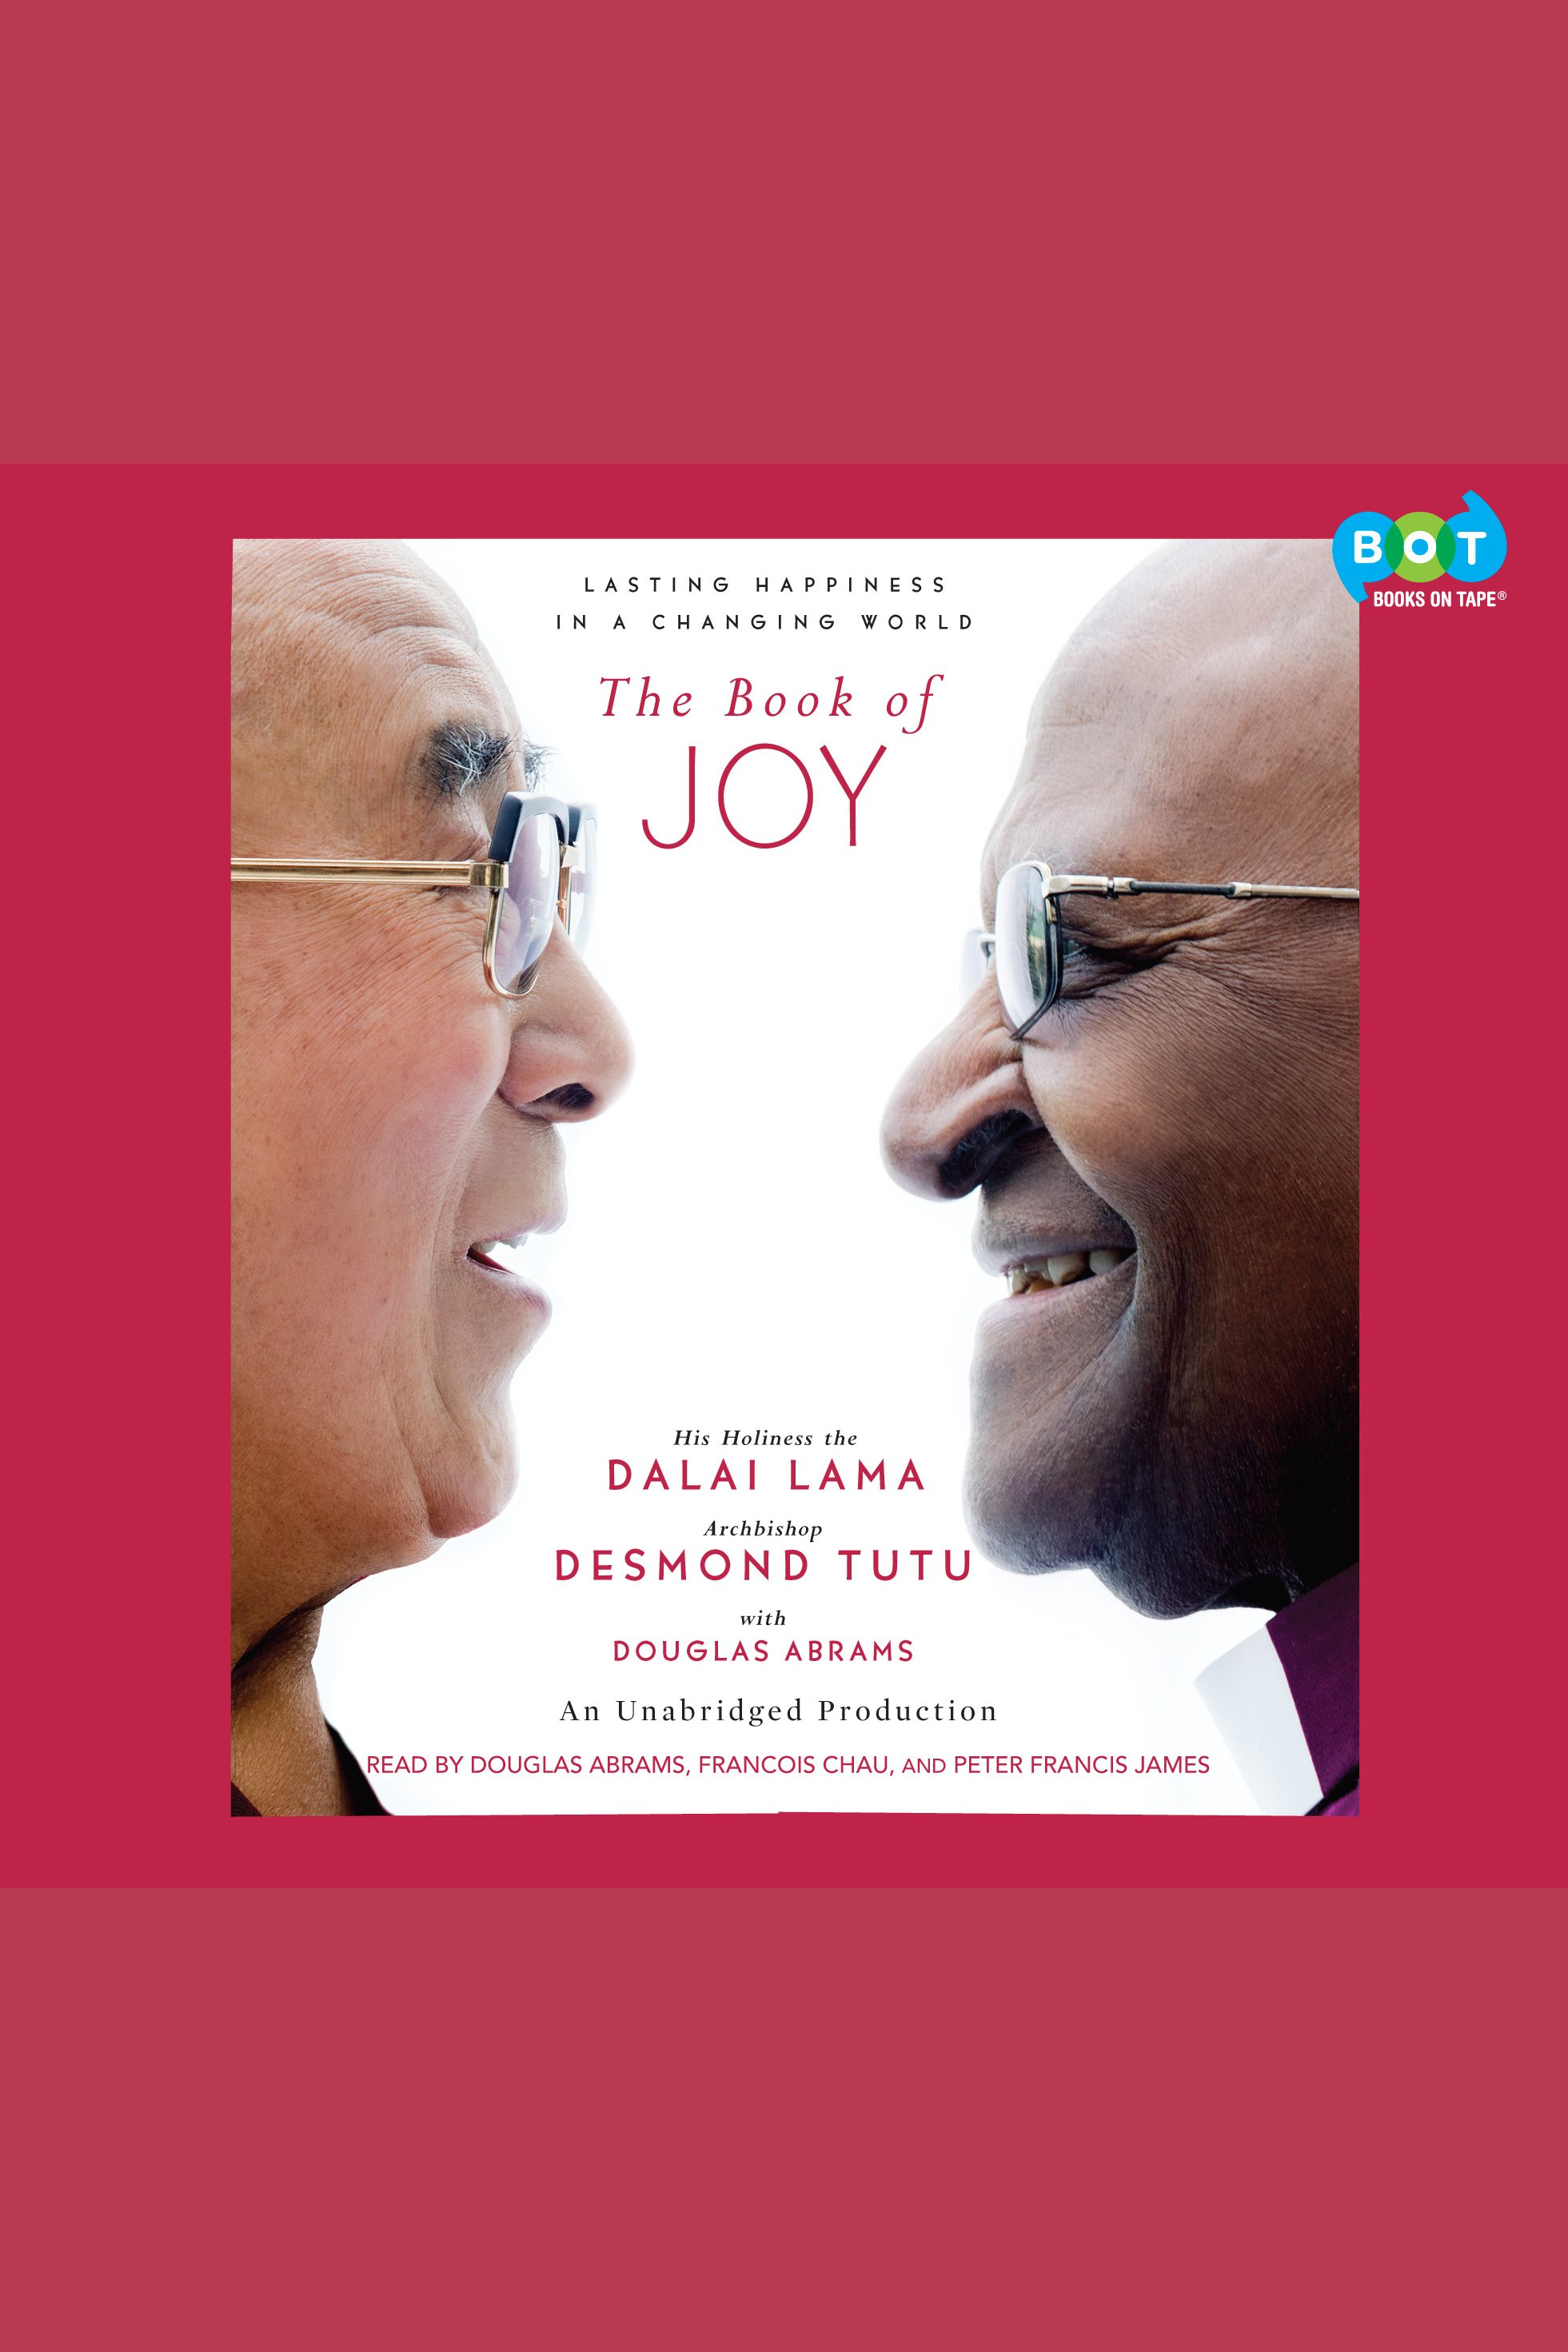 The Book of Joy [AUDIO EBOOK] : Lasting Happiness in a Changing World